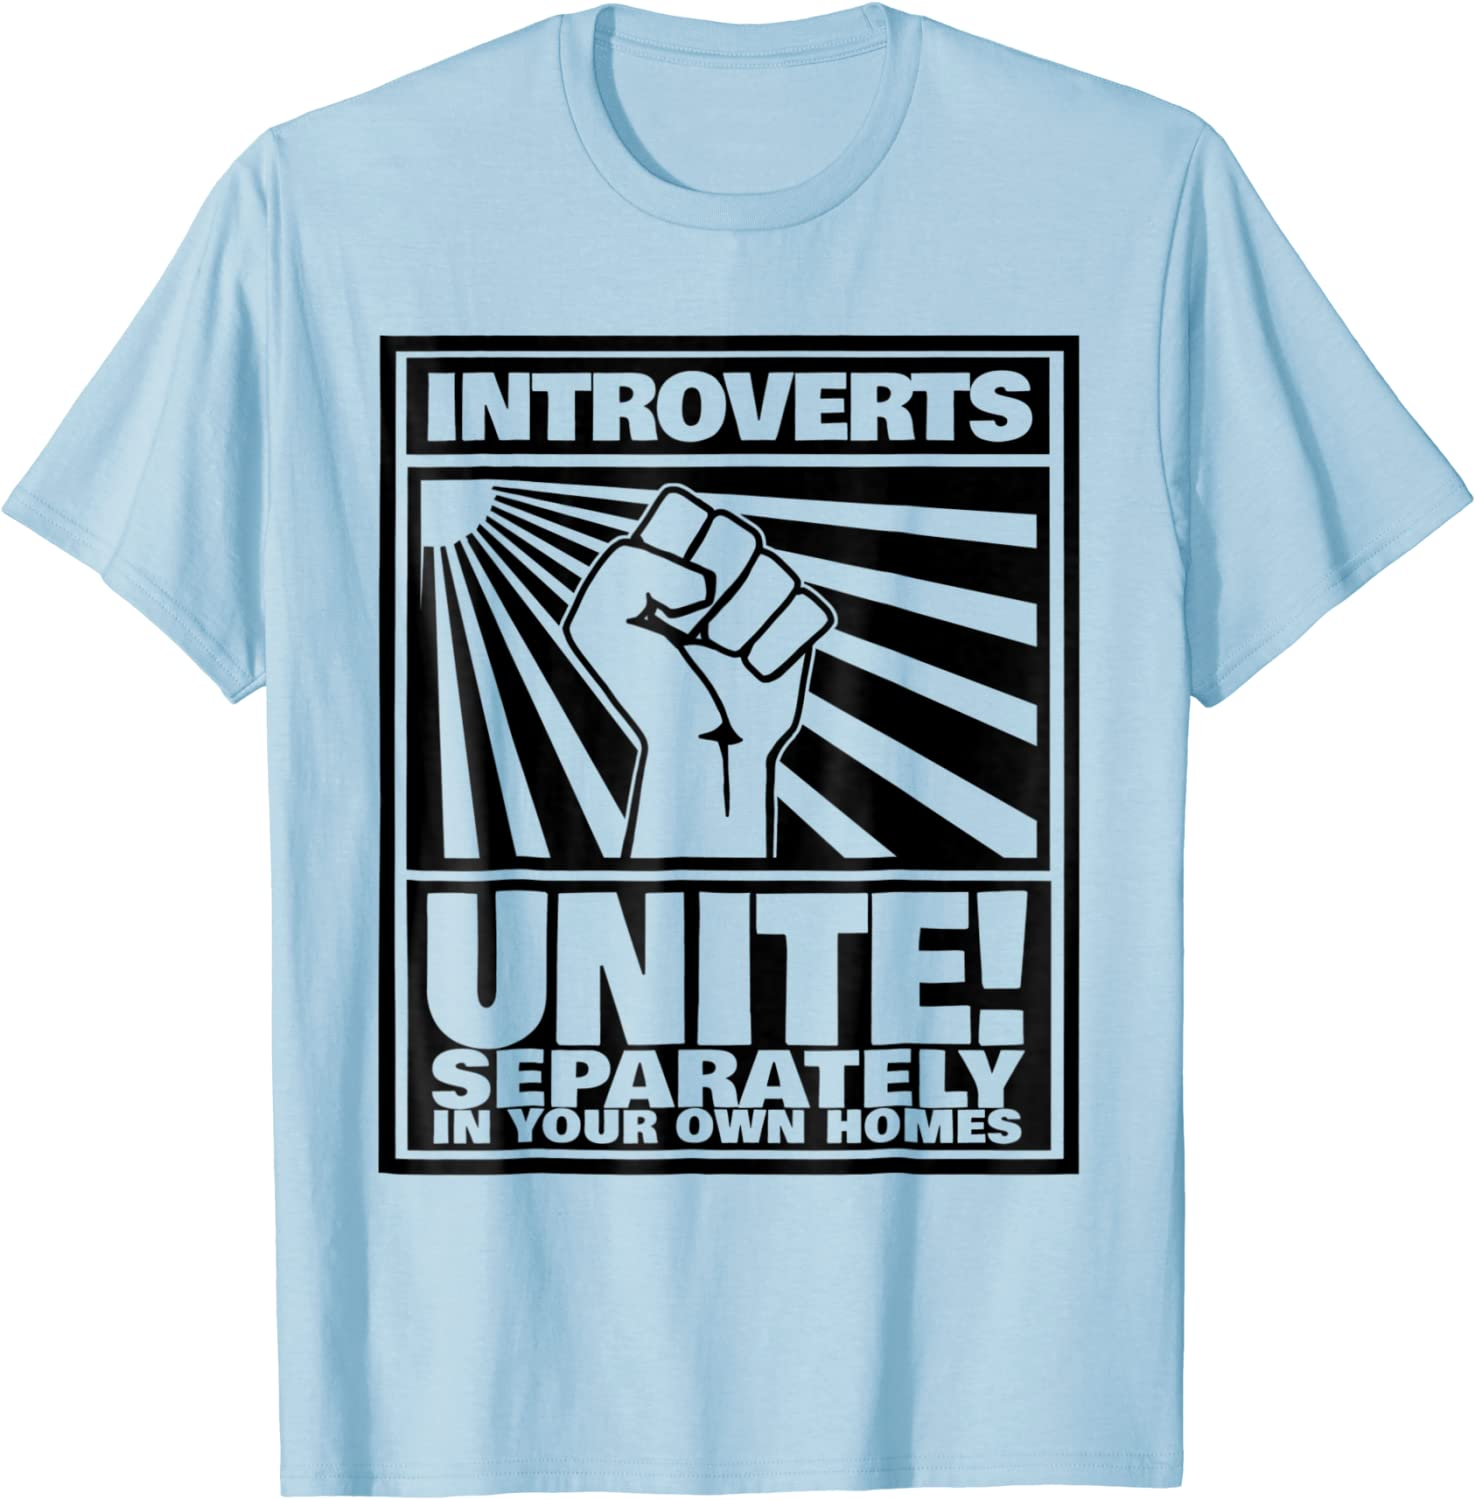 Introverts Unite! We're Here We're Uncomfortable And We Want To Go Home T- shirt or Tank Top Goodness Gray Shirts